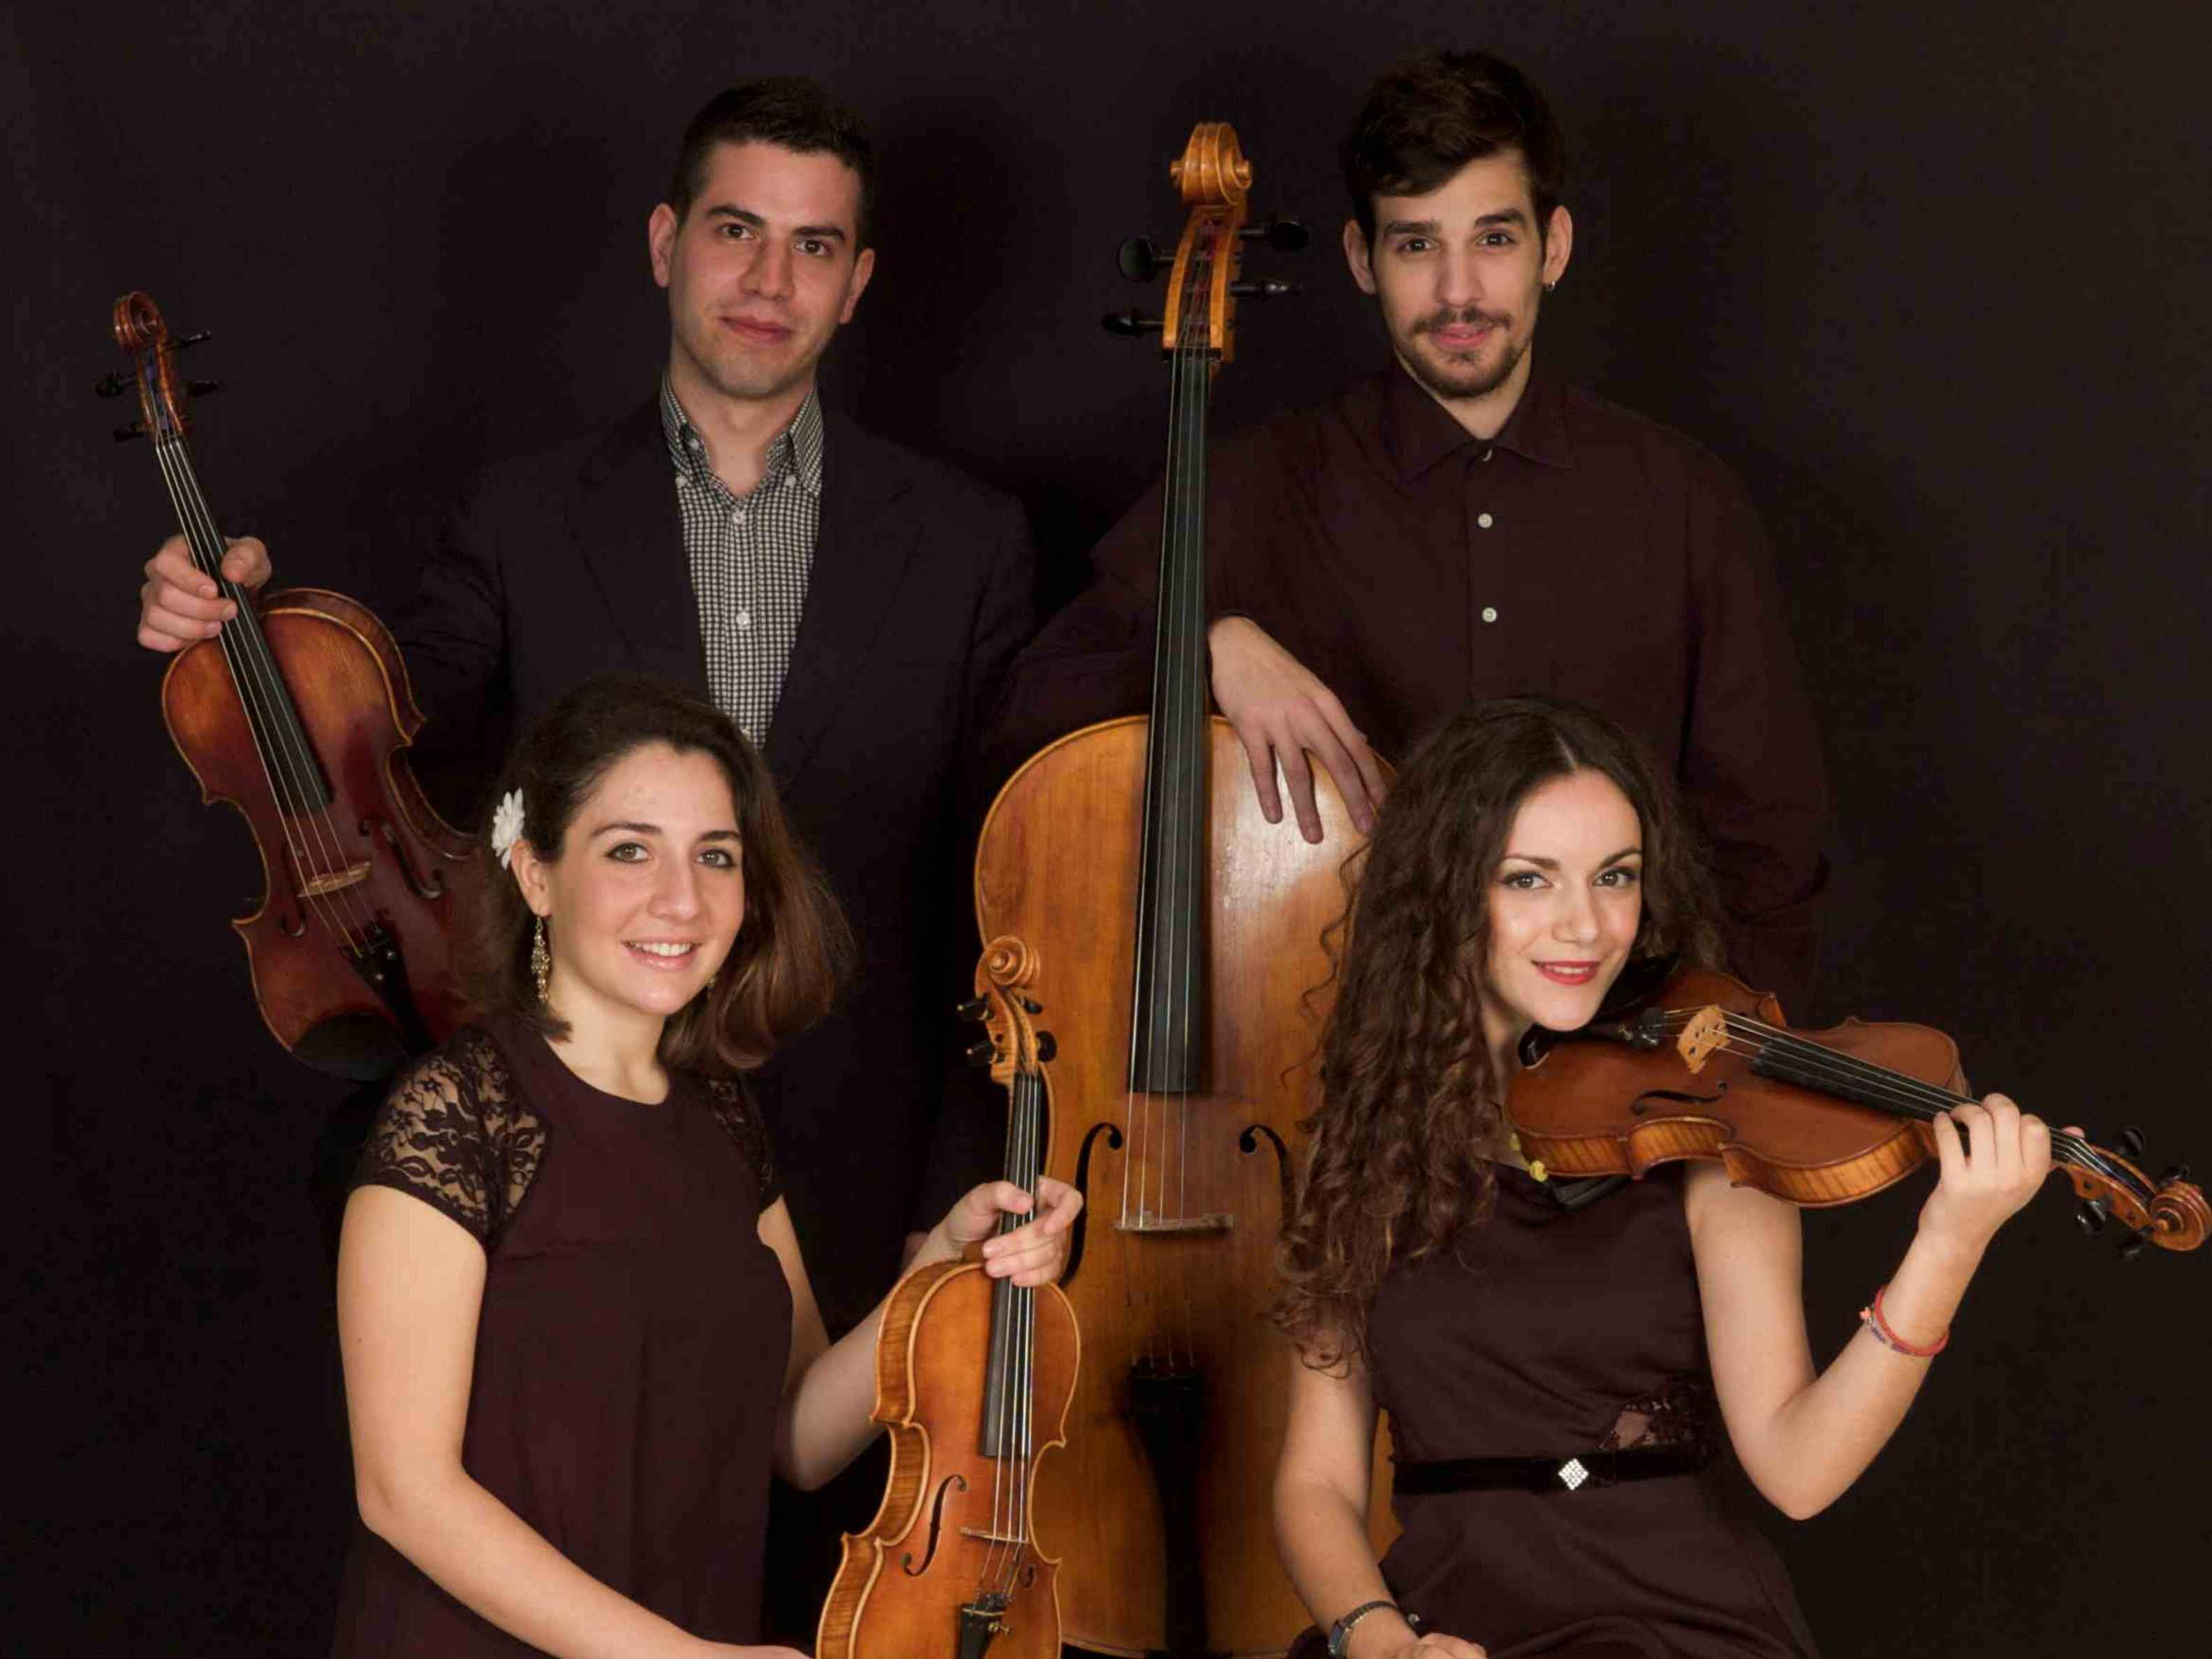 """24th December 2015 - The Athenian Rhapsody Quartet performance @ Astra Service SA in Neo Heraklion. 88, Marinou Antypa Str for Christmas Celebrating """"Road Show"""" event staged by Astra Service."""